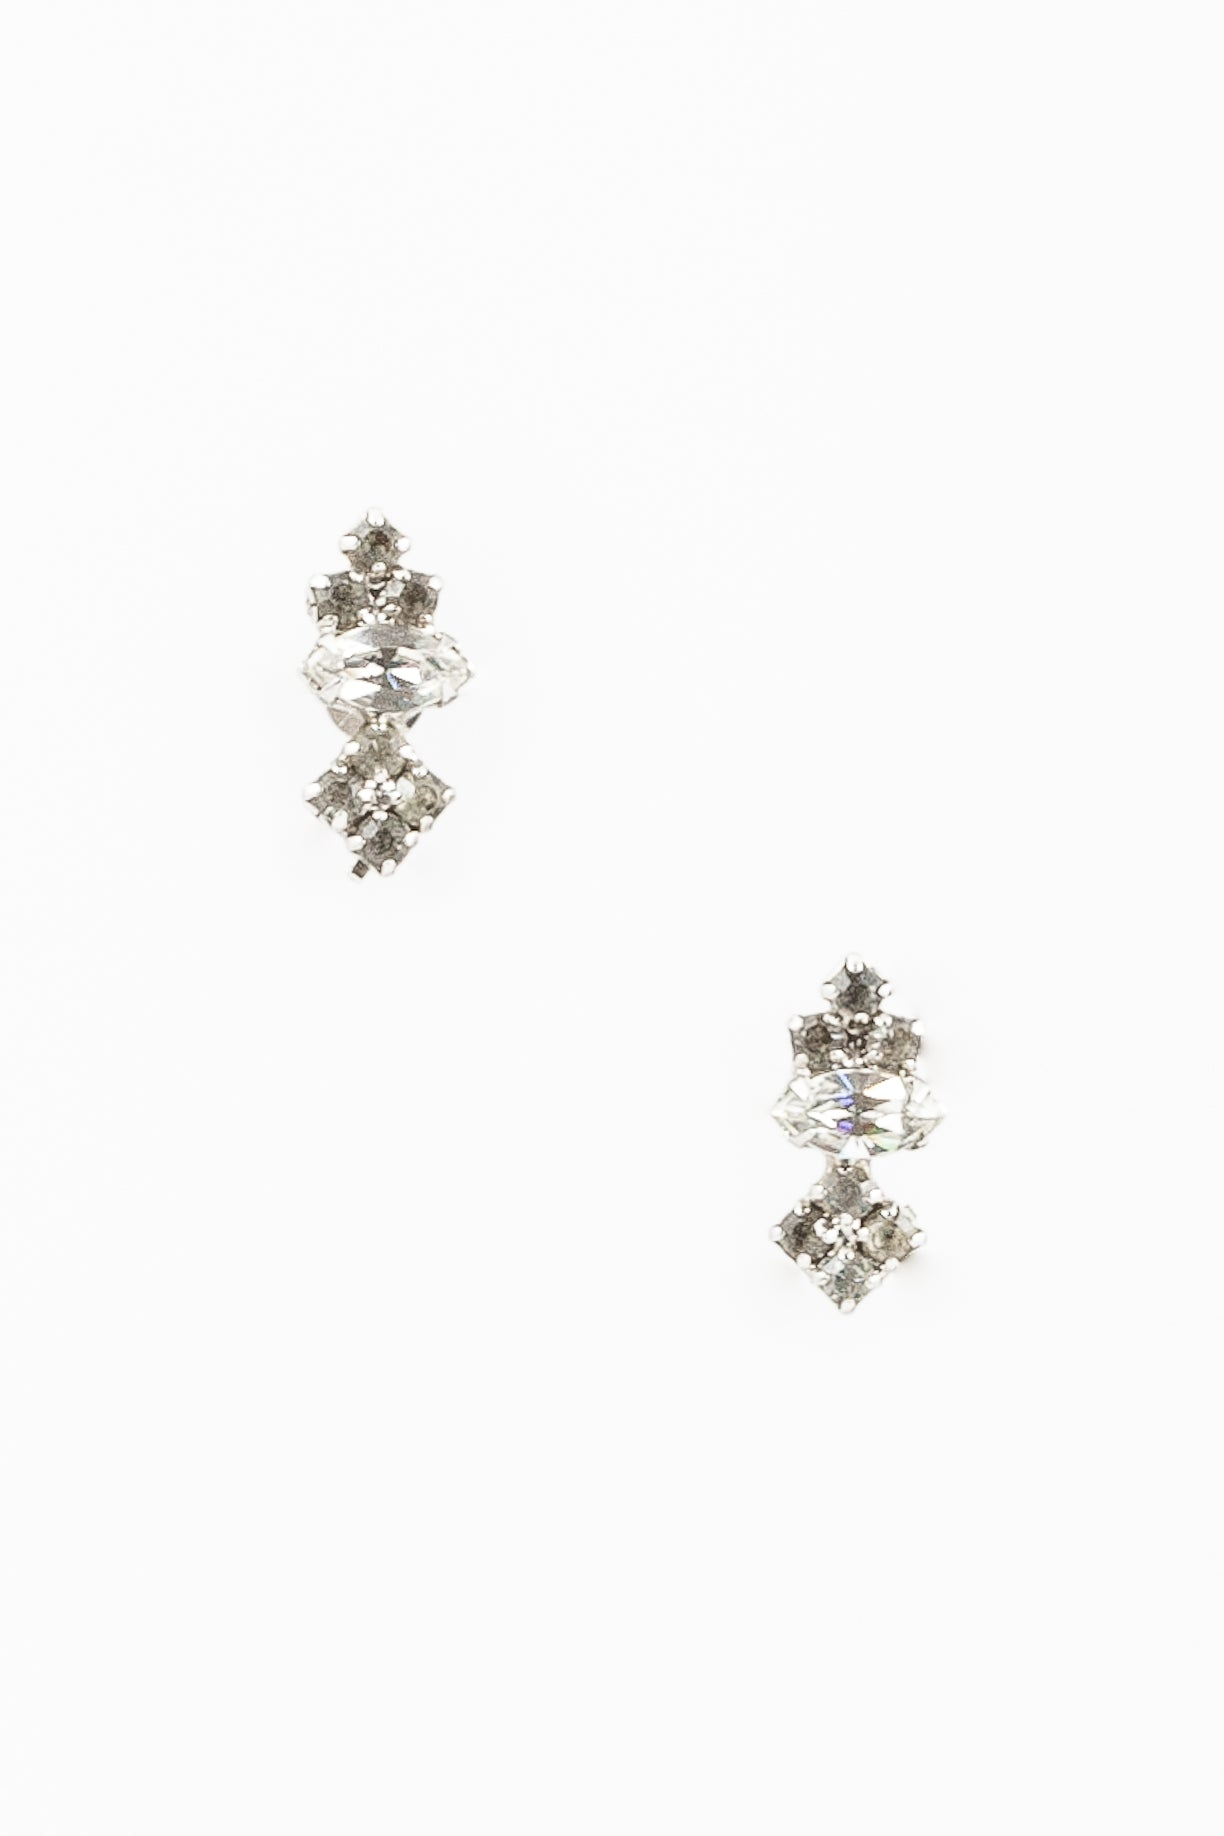 60's__Vintage__Simple Rhinestone Cluster Clips